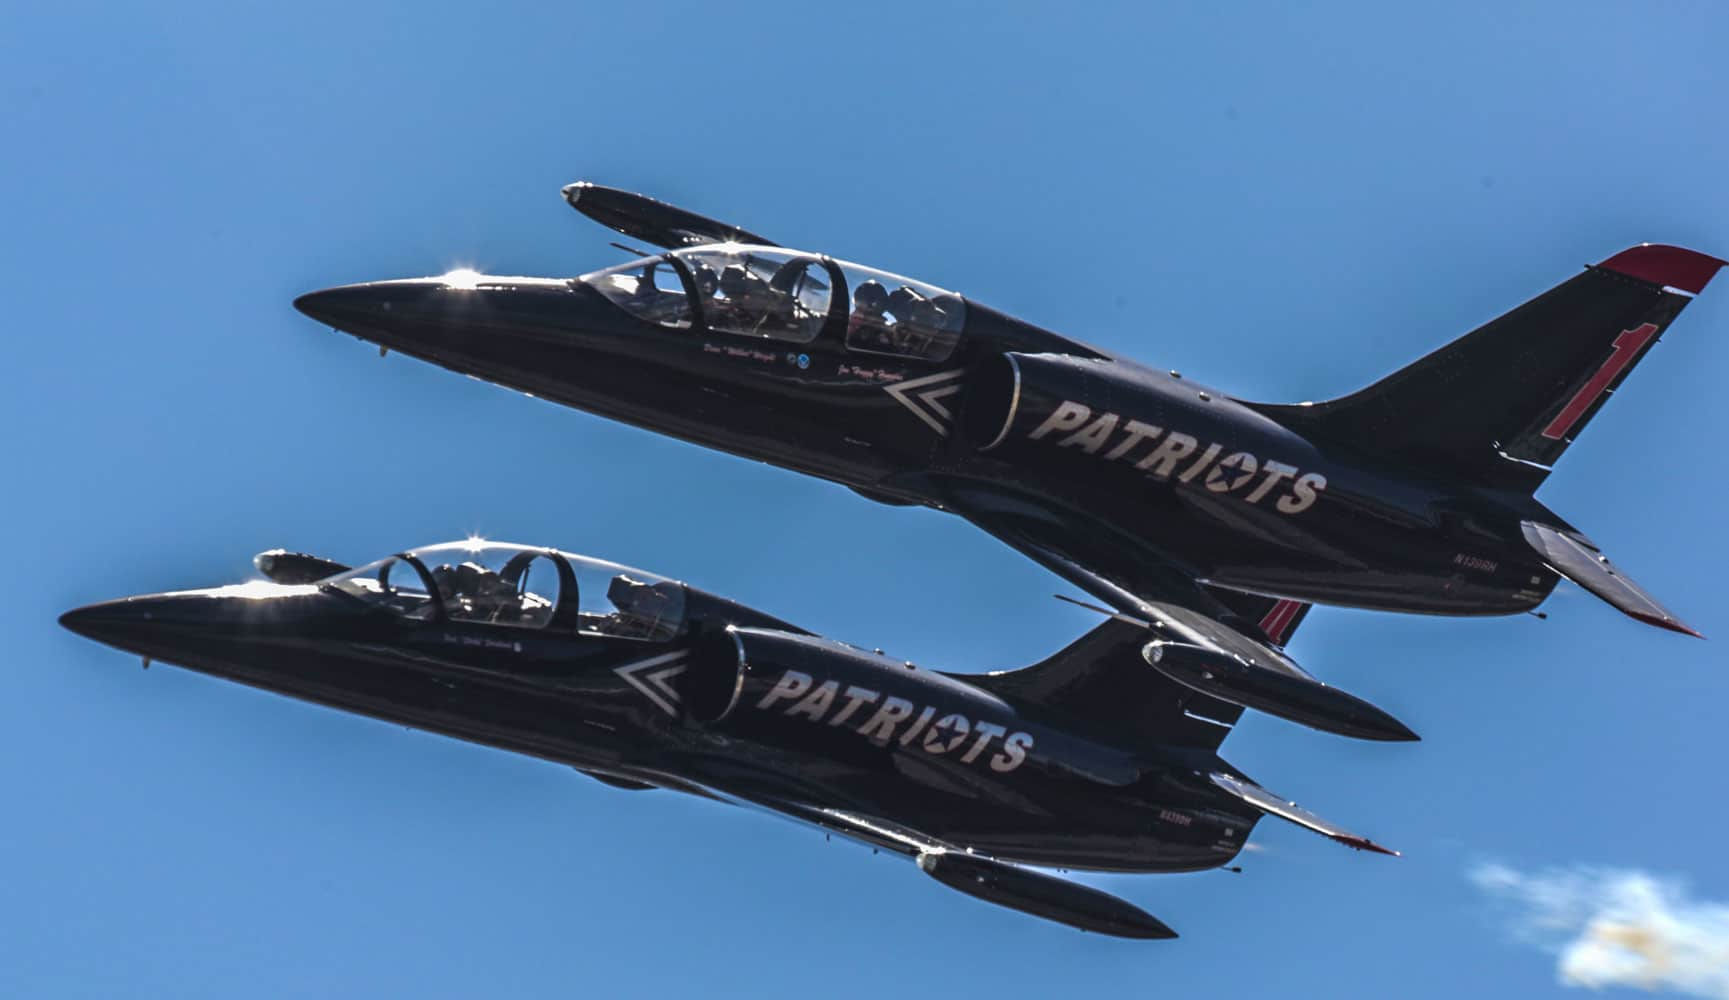 The Patriots Jet Team features several performances and displays recognizing the sacrifices of Vietnam veterans.